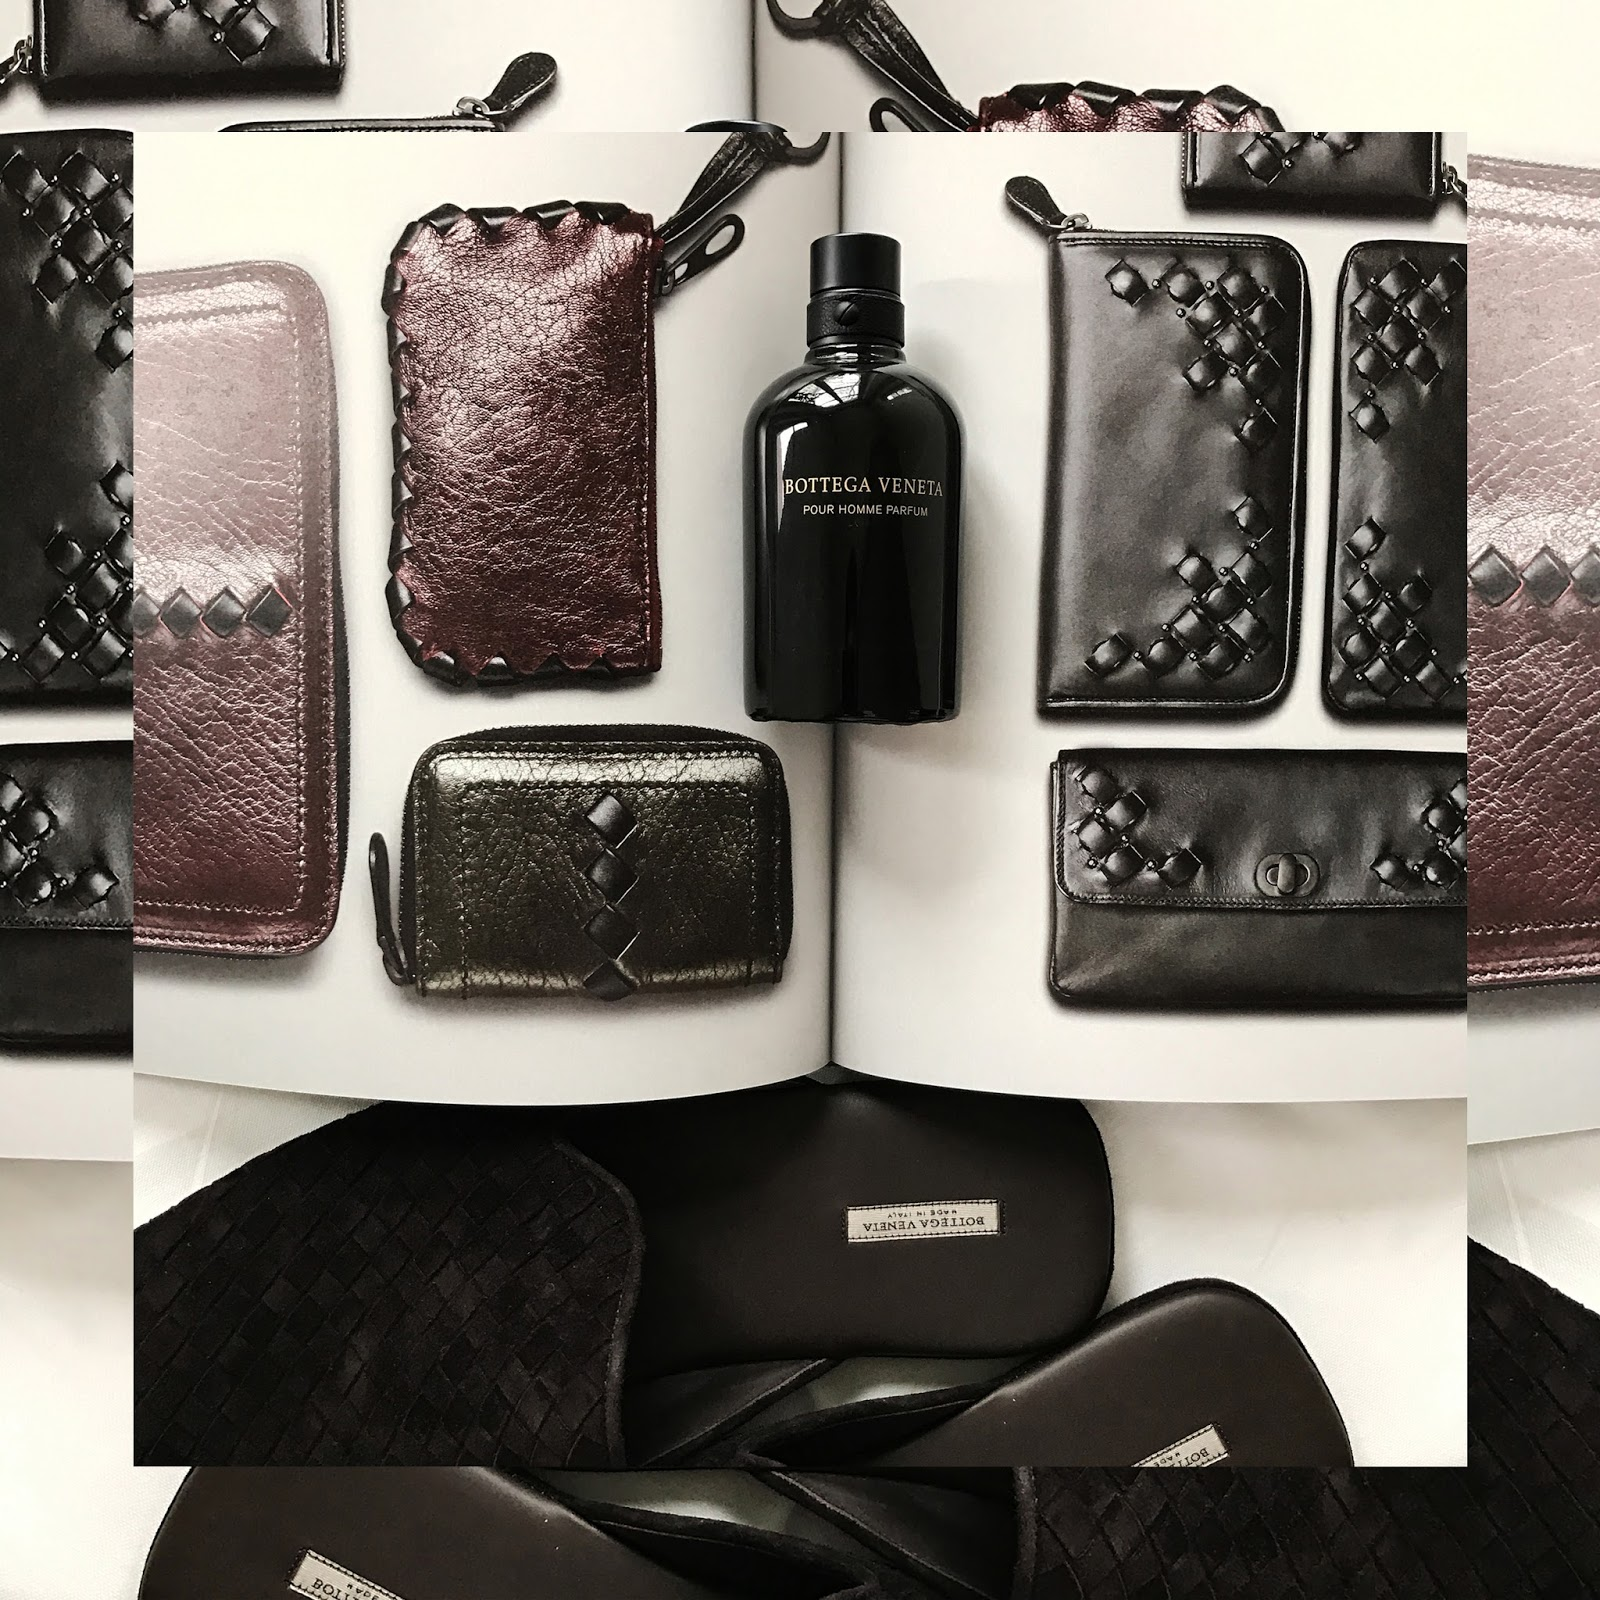 be66f4cef3 Bottega Veneta pour Homme is a strongly masculine and fascinating  combination of rare and high quality materilas. That differentiates itself  from other ...